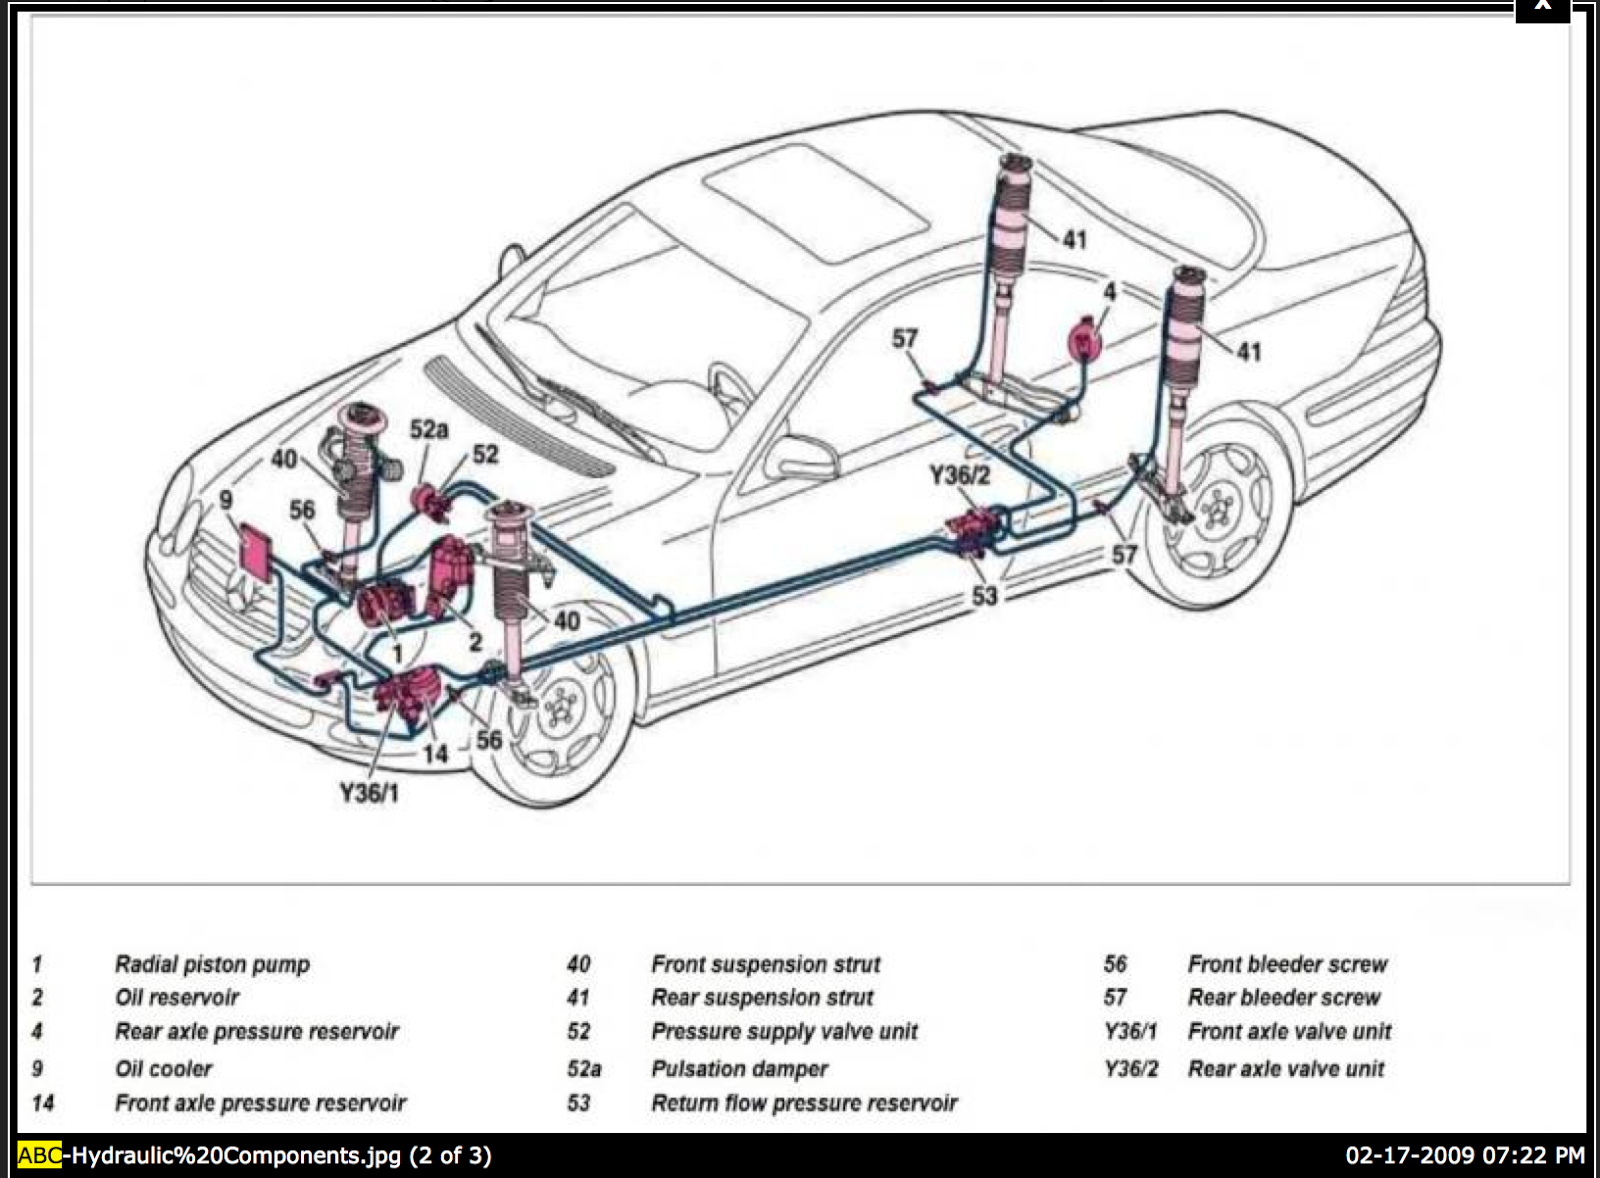 Mercedes Benz ABC System Troubleshooting Guide: ABC System